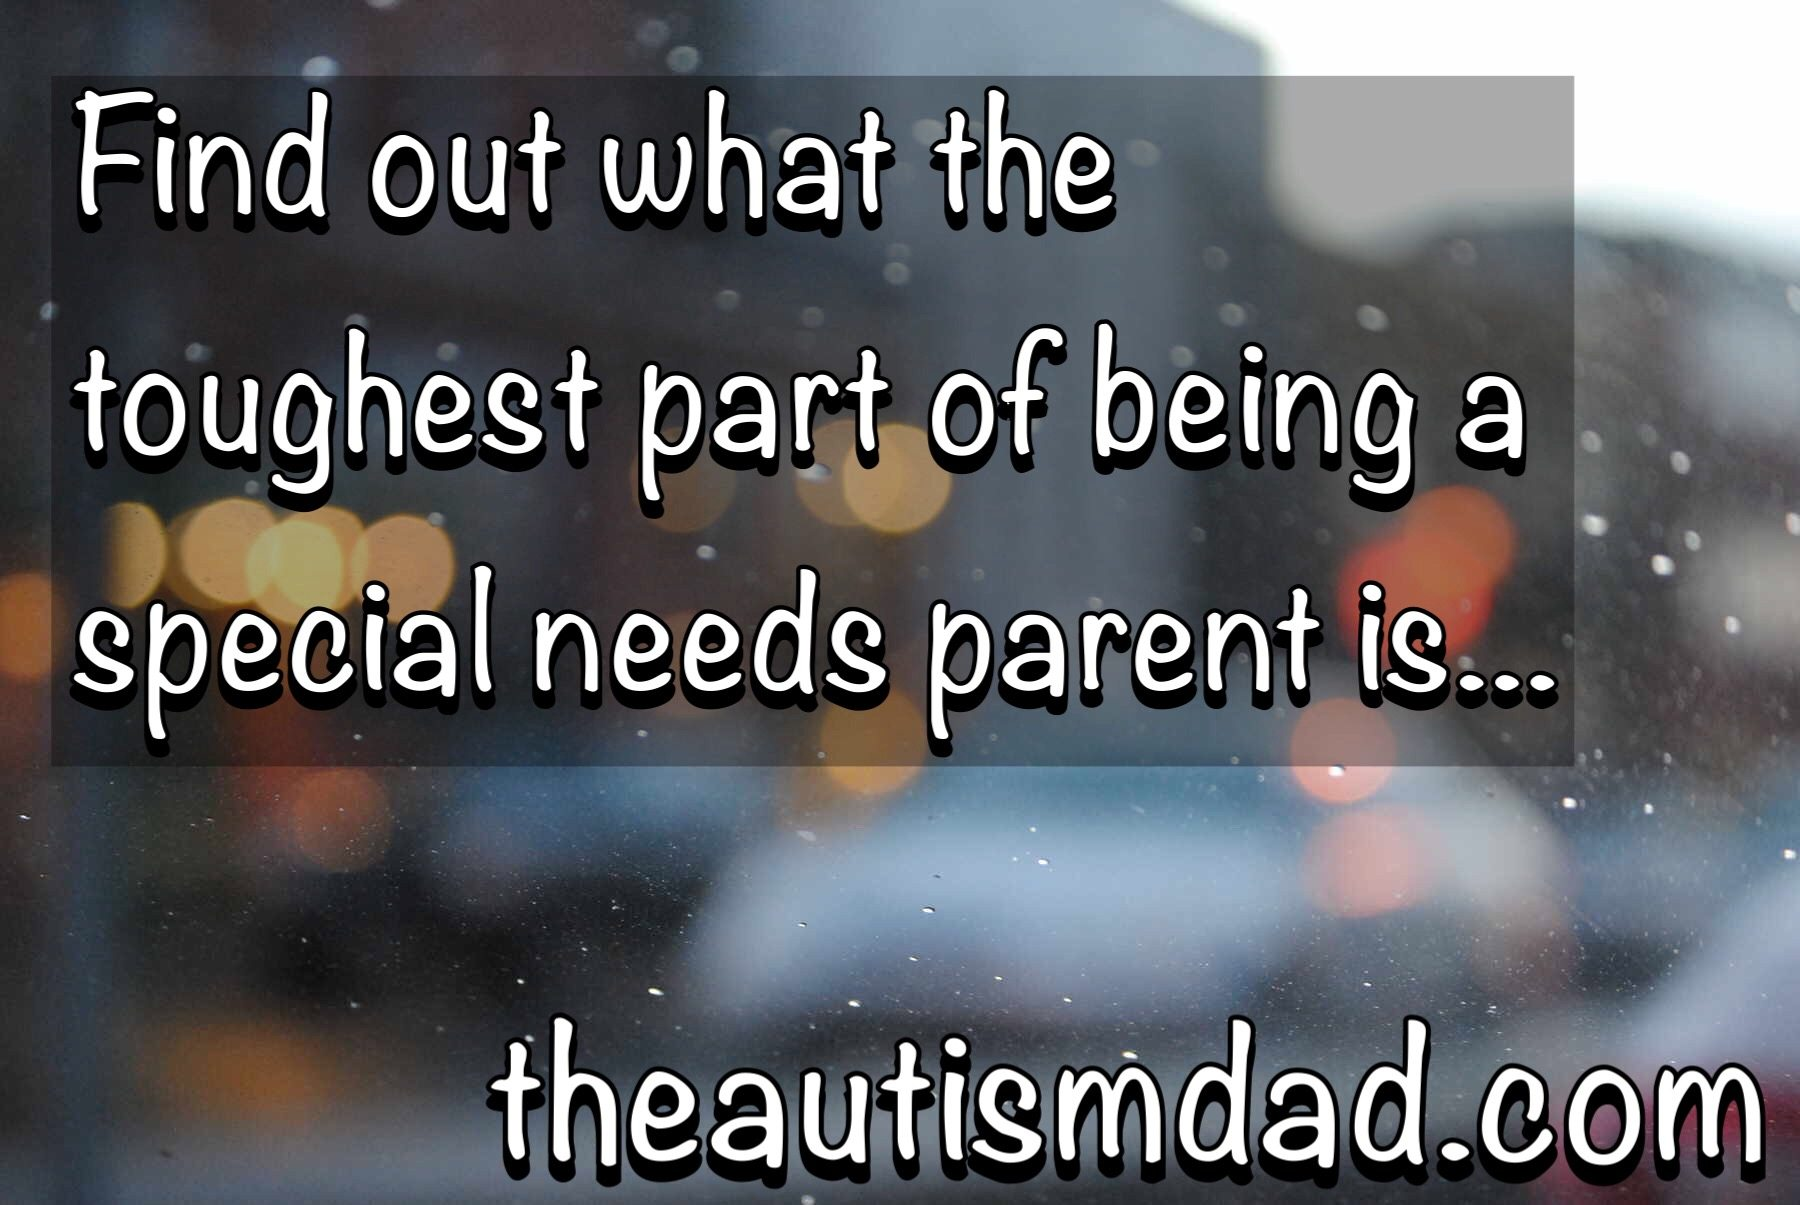 Find out what the toughest part of being a special needs parent is…